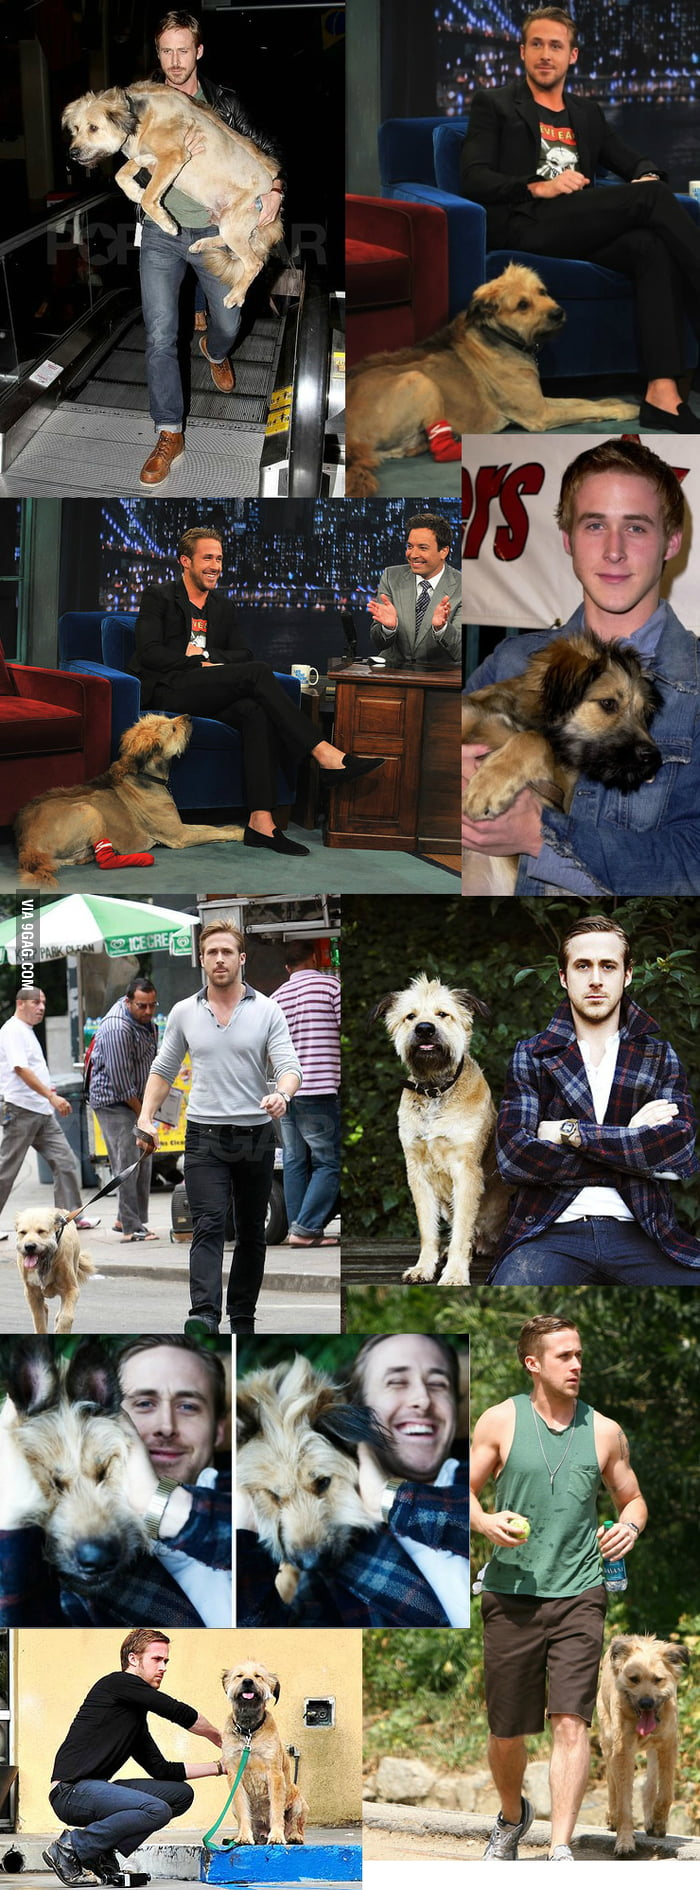 Just Ryan and his dog George